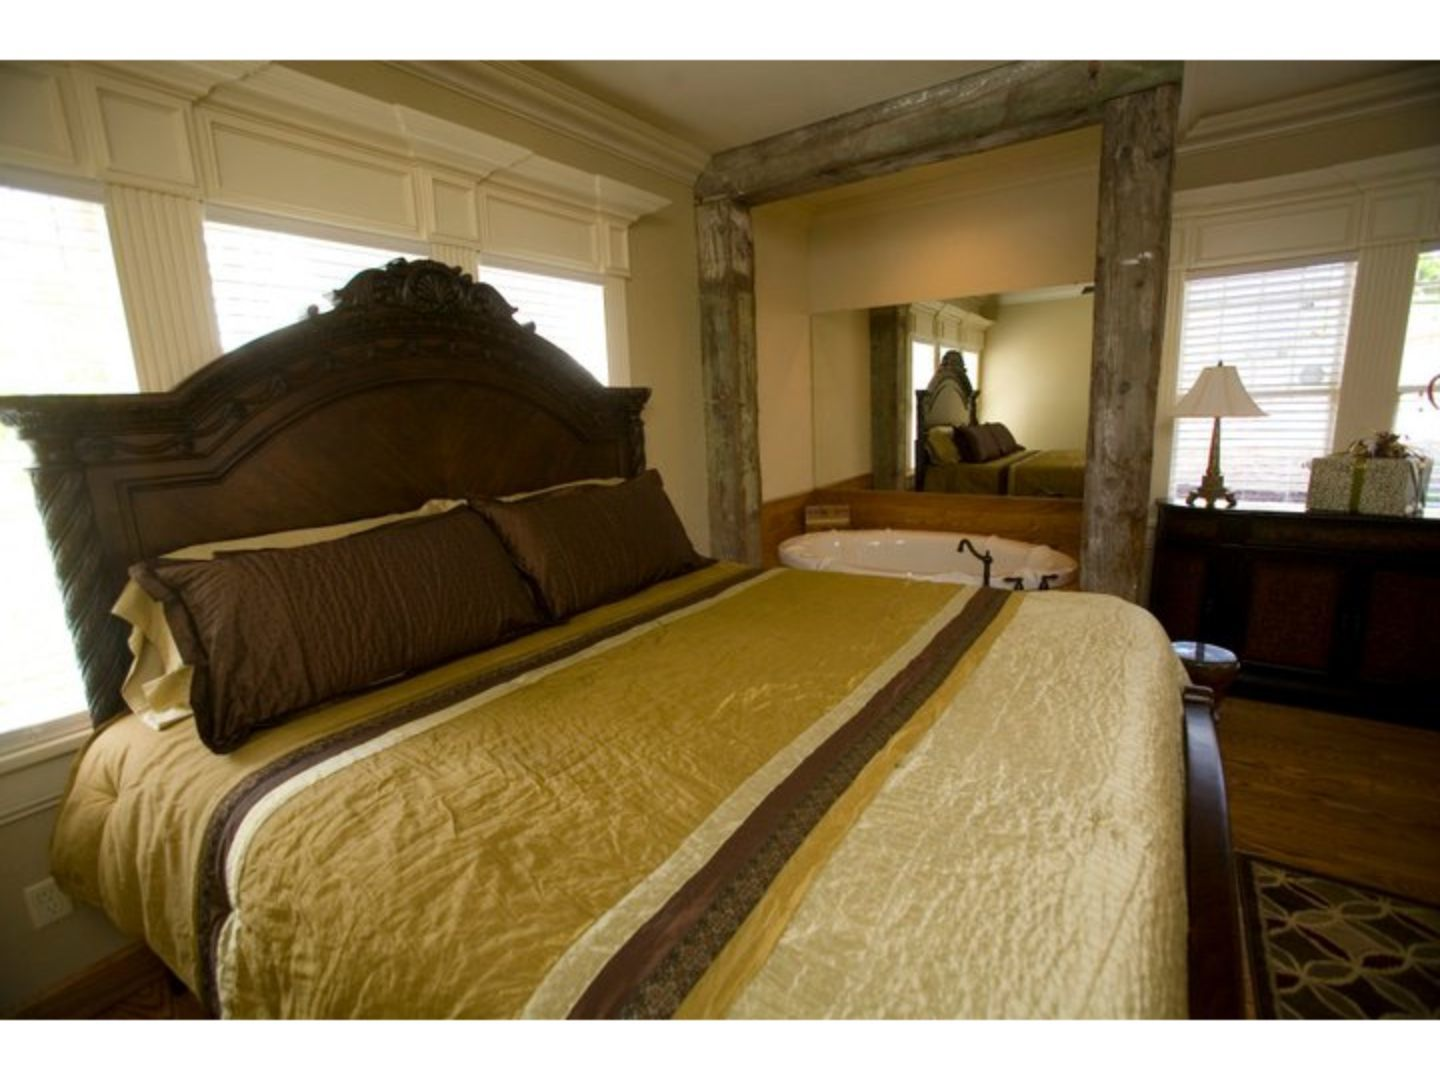 A bedroom with a bed and a large window at The Branson House.